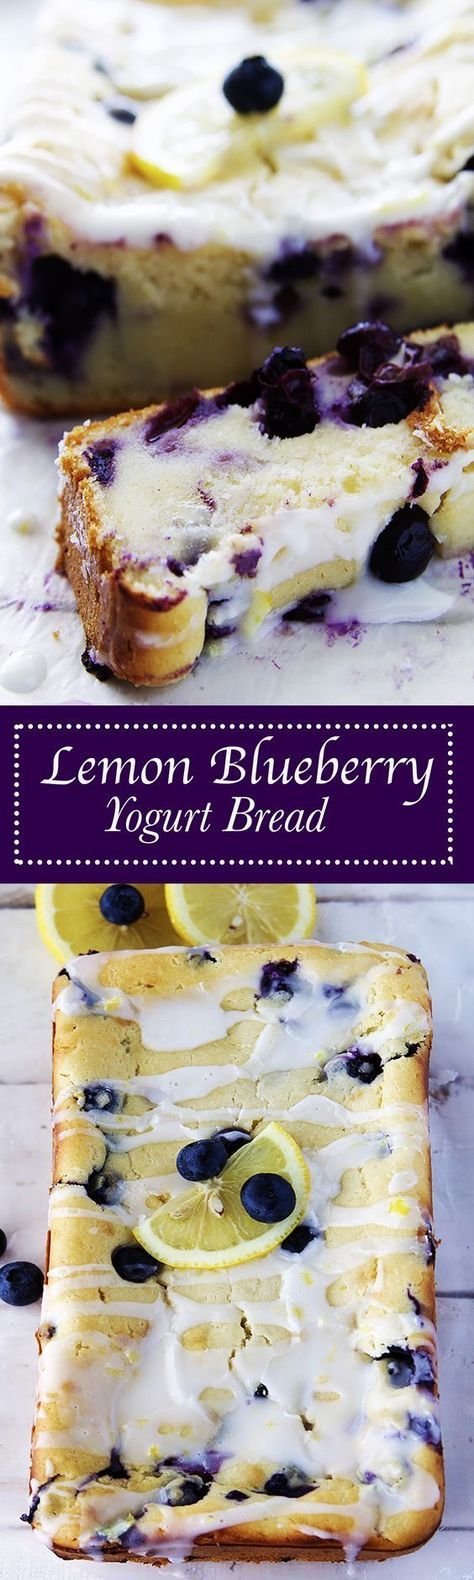 Lemon Blueberry Yogurt Bread Recipe via Fitness Food Diva - Bursting with blueberries, flavored just perfectly with lemon zest, and topped off with a lite lemon glaze, this is amazing for Summer.